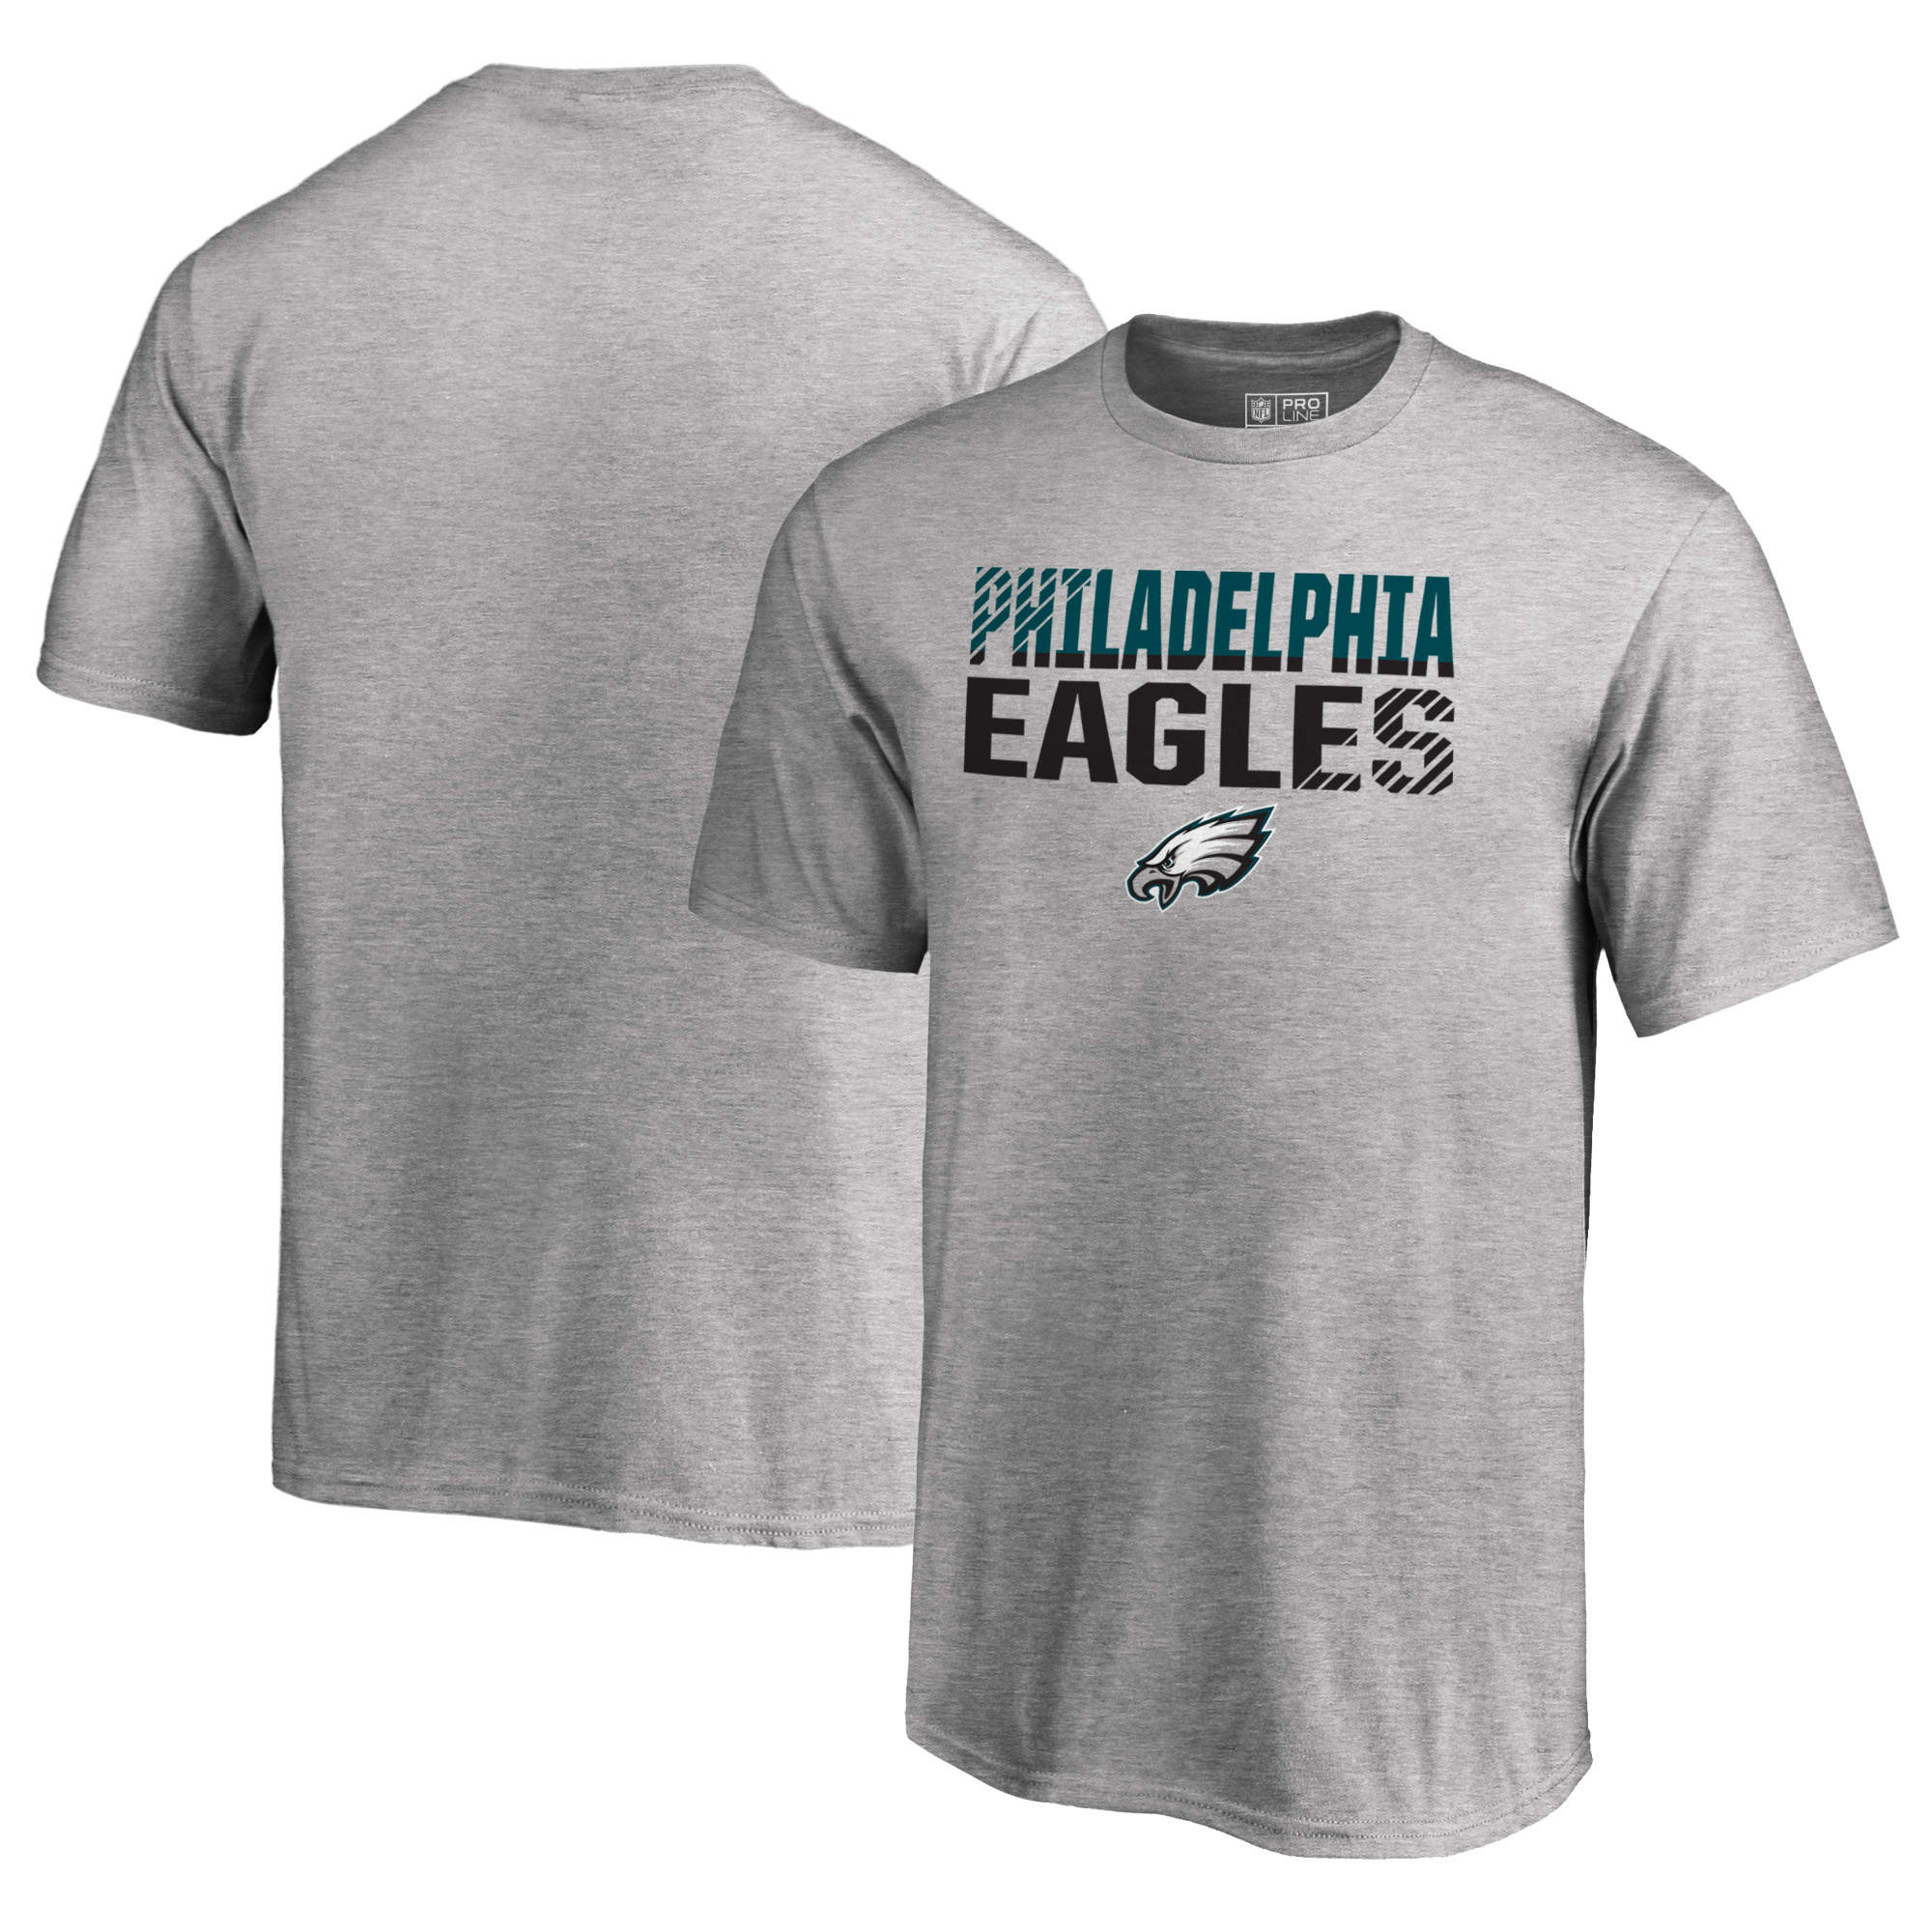 Philadelphia Eagles NFL Pro Line by Fanatics Branded Youth Iconic Collection Fade Out T-Shirt - Ash